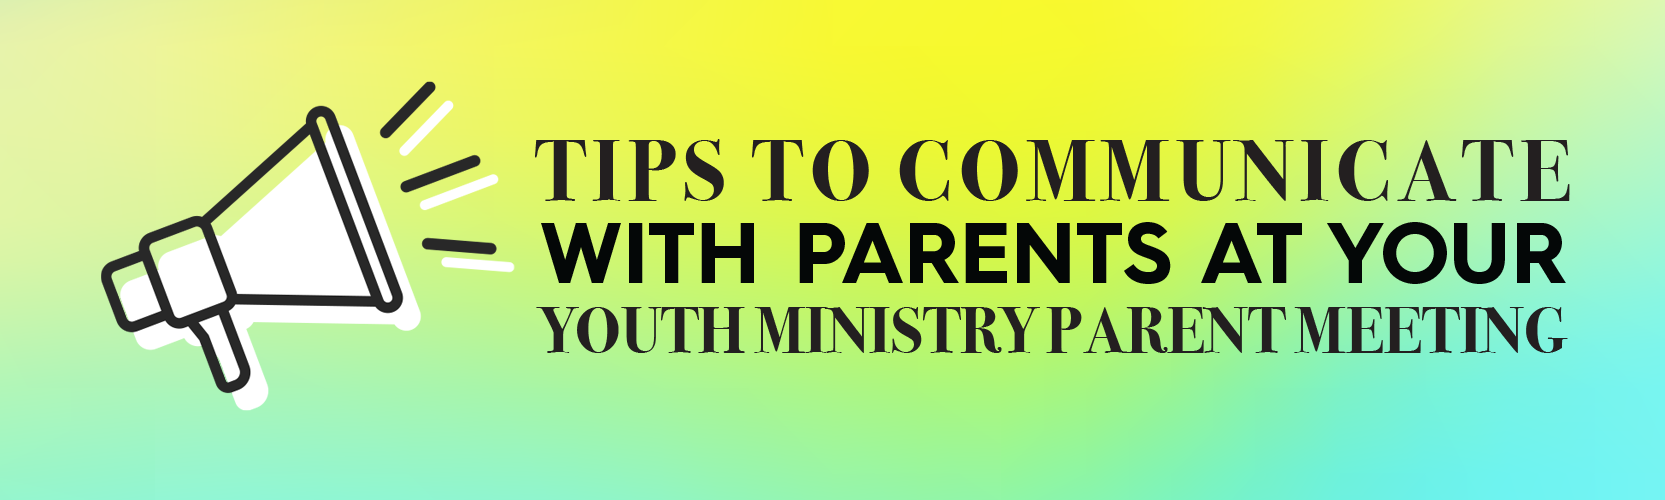 Tips to Communicate with Parents at Your Youth Ministry Parent Meeting